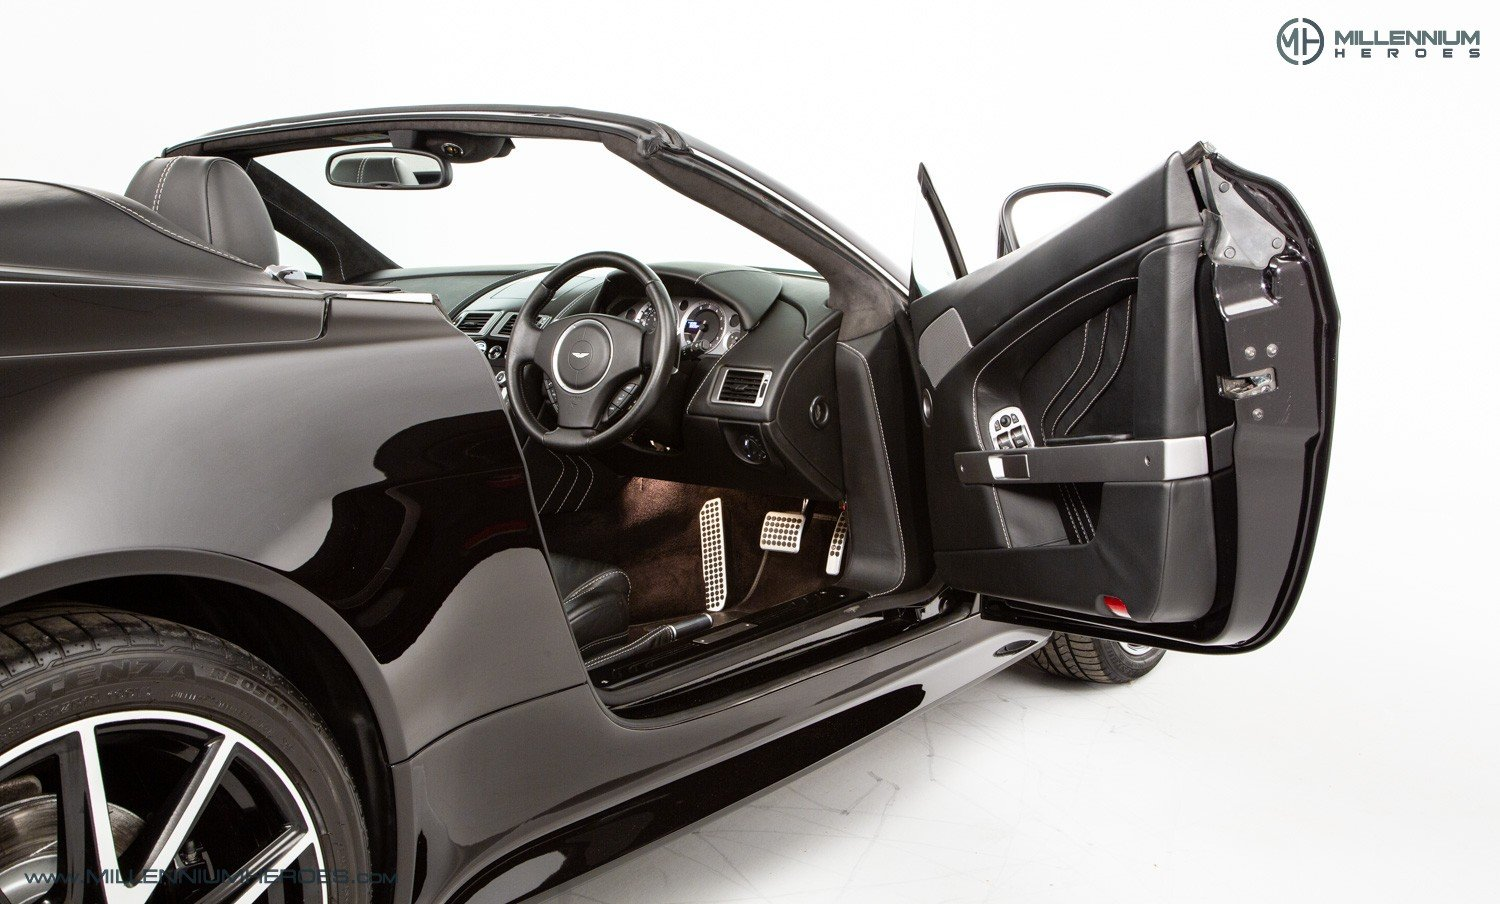 2013 ASTON MARTIN V8 VANTAGE S // AM WARRANTY // FULL AM HISTORY  For Sale (picture 13 of 23)